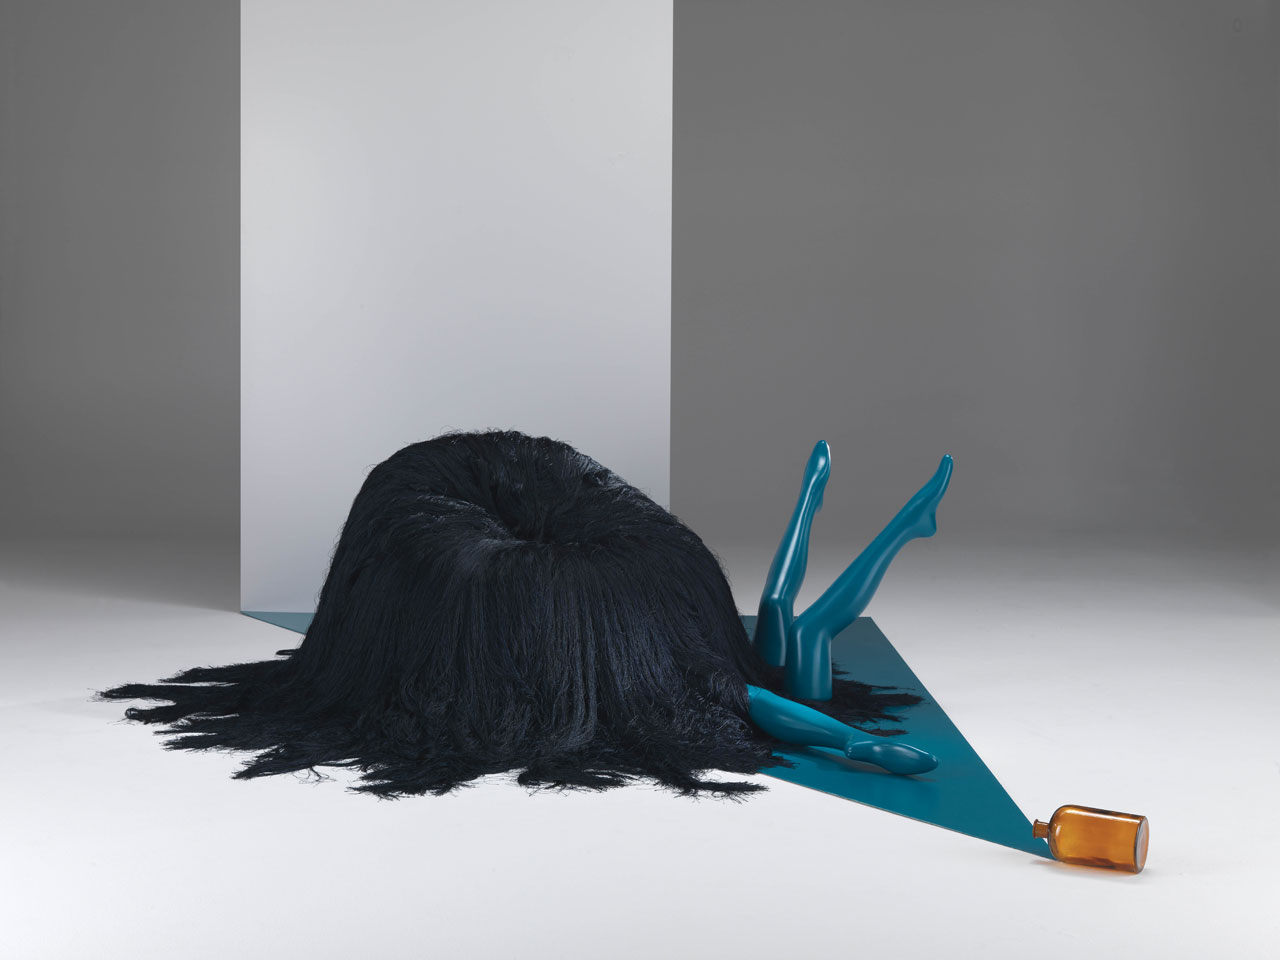 OGLOF pouf by CTRLZAK for JCP Universe.Materials: memory foam cushioned structure with black and blue thin Cordonetto fringes.Dimensions (H x W x D): 63cm x 90cm x 92cm. OGLOF storytelling picture. Photo by Silvio Macchi, set design by Katia Meneghini © JCP Universe.